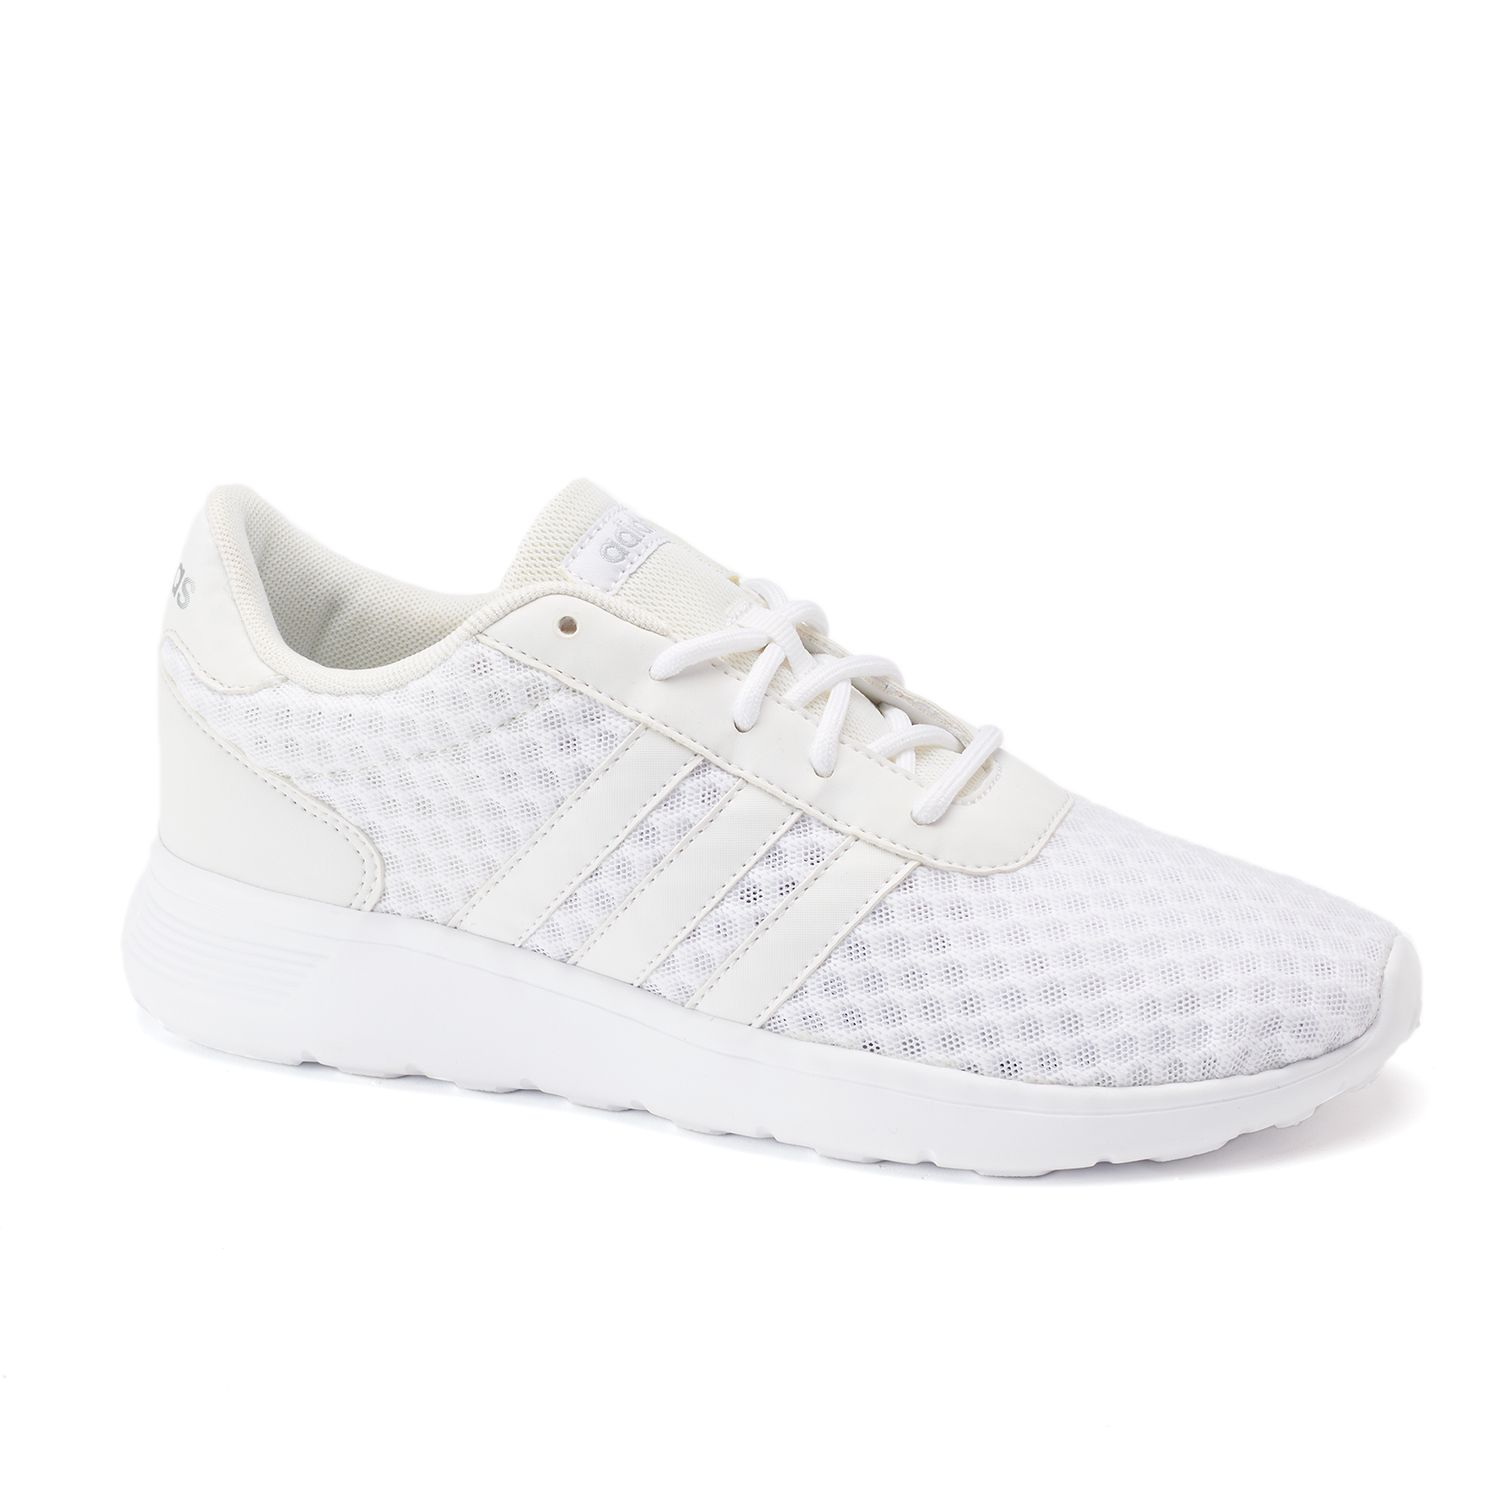 adidas NEO Cloudfoam Lite Racer Women\u0027s Shoes